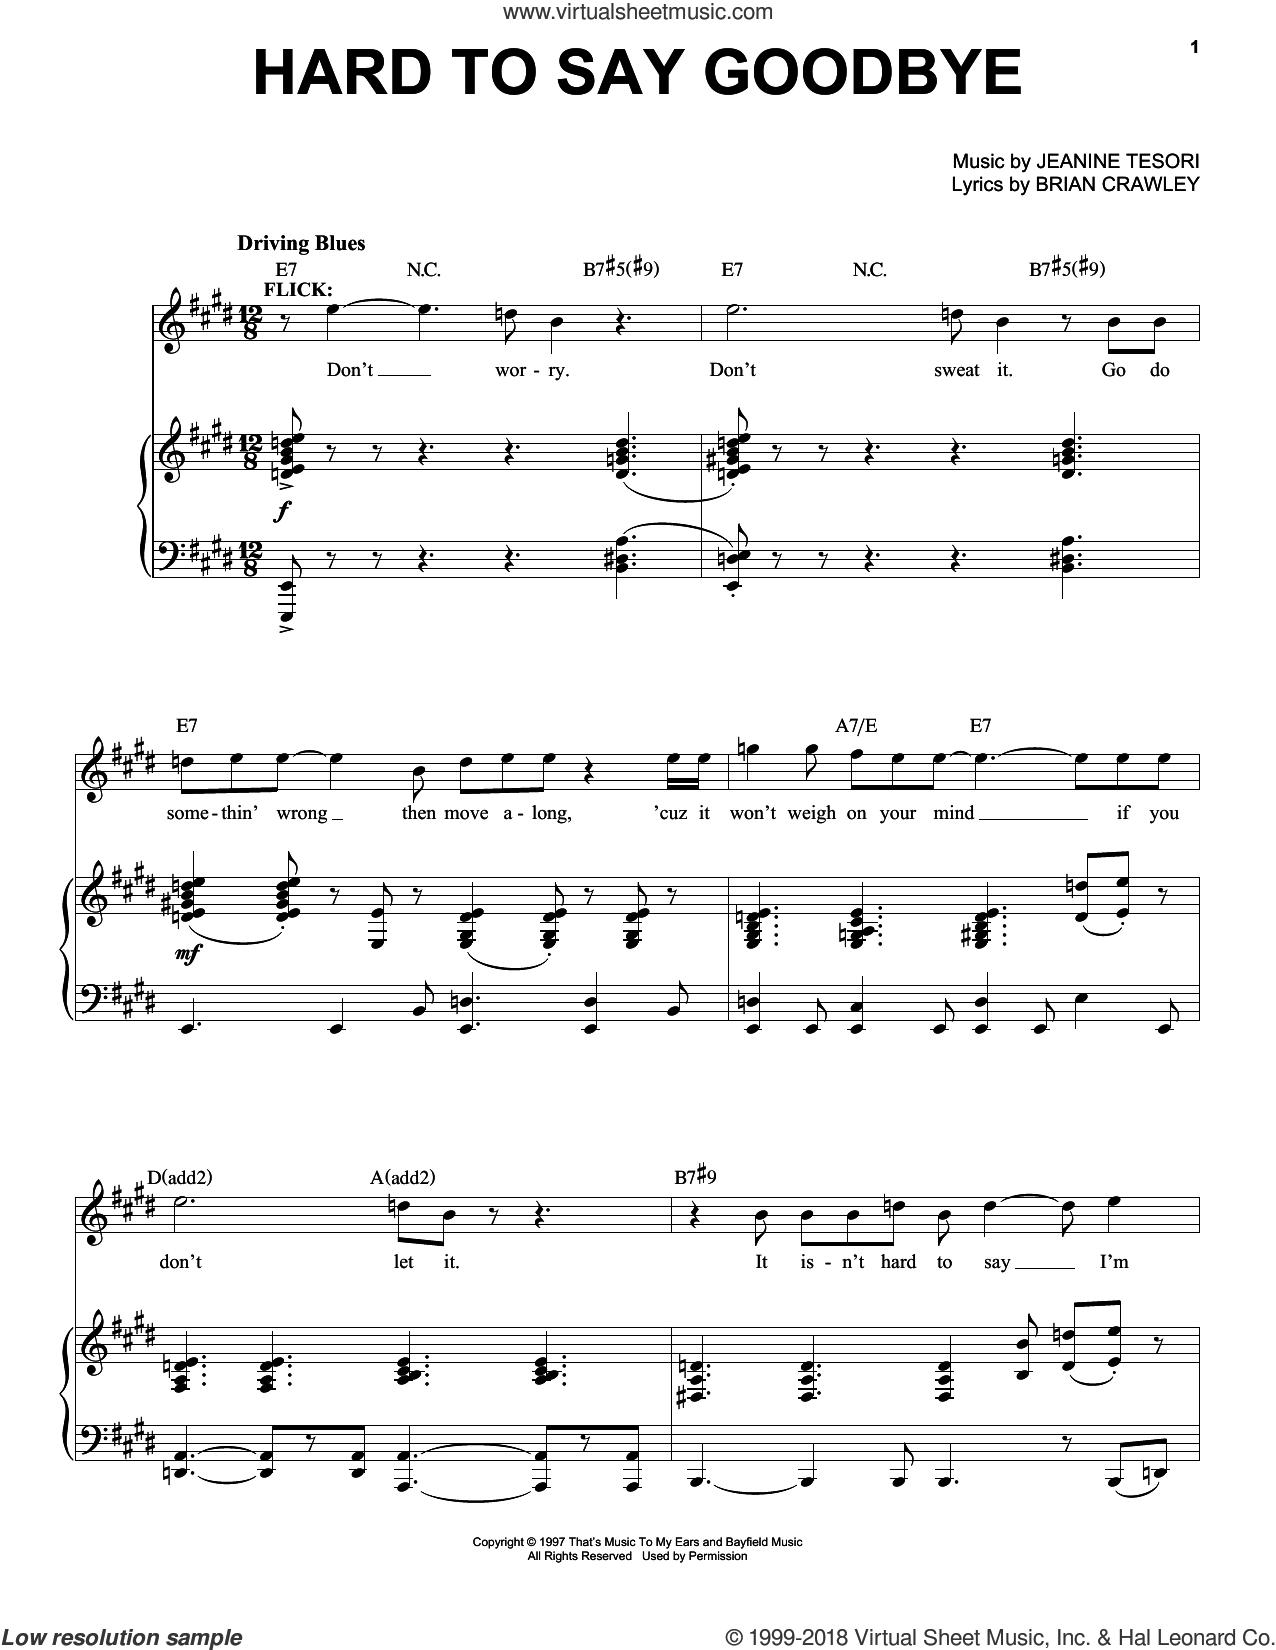 Hard To Say Goodbye sheet music for voice and piano by Jeanine Tesori and Brian Crawley, intermediate skill level